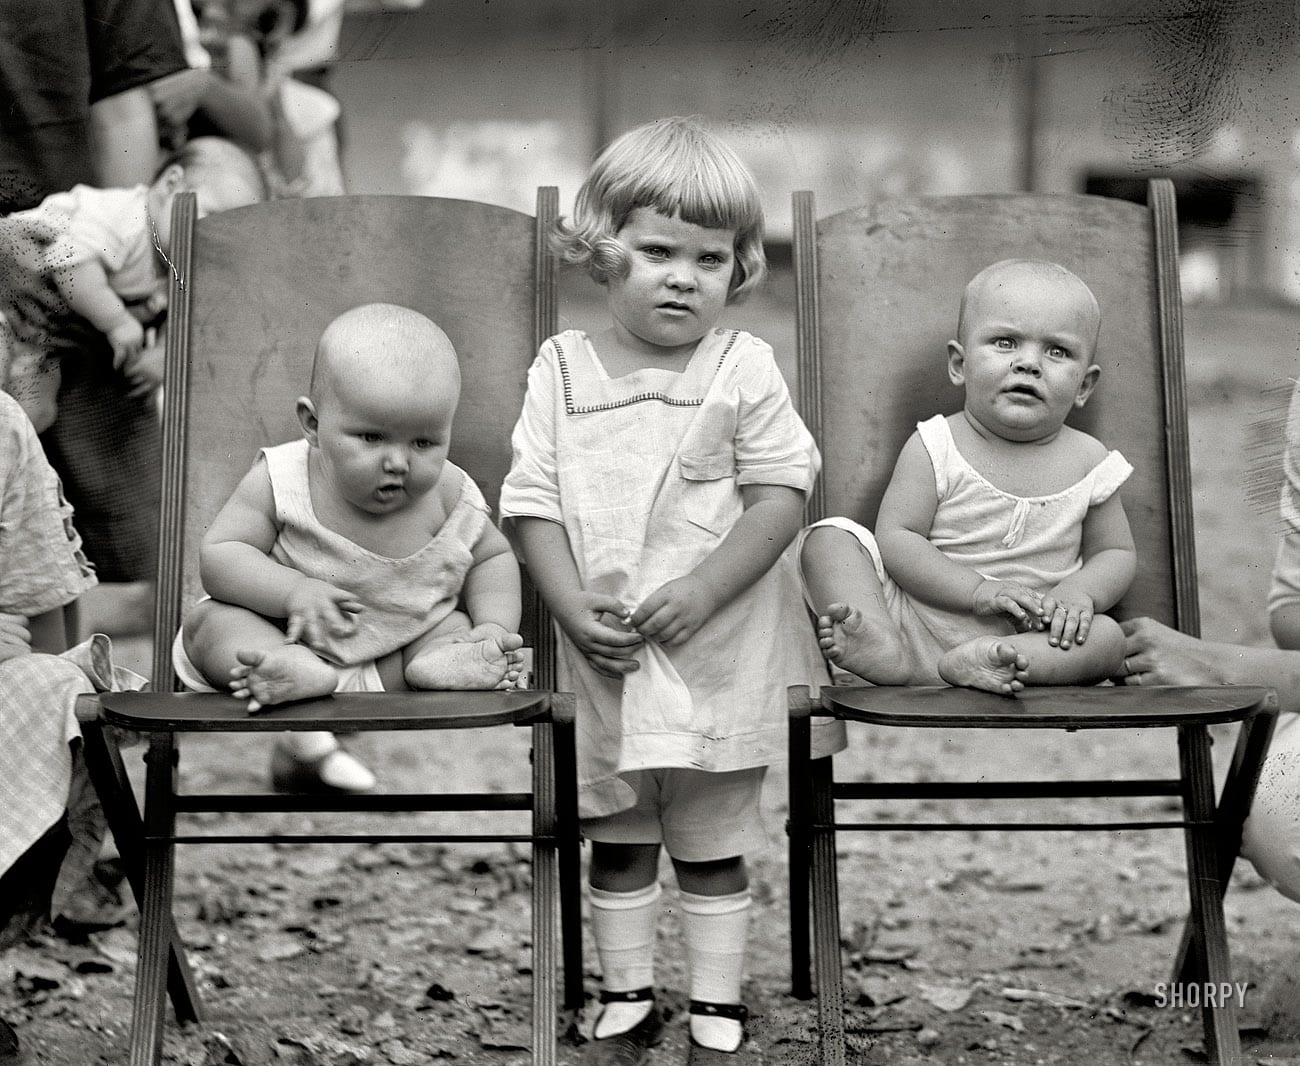 """September 7, 1922. Washington, D.C. """"Playground baby show."""" National Photo Company Collection glass negative."""